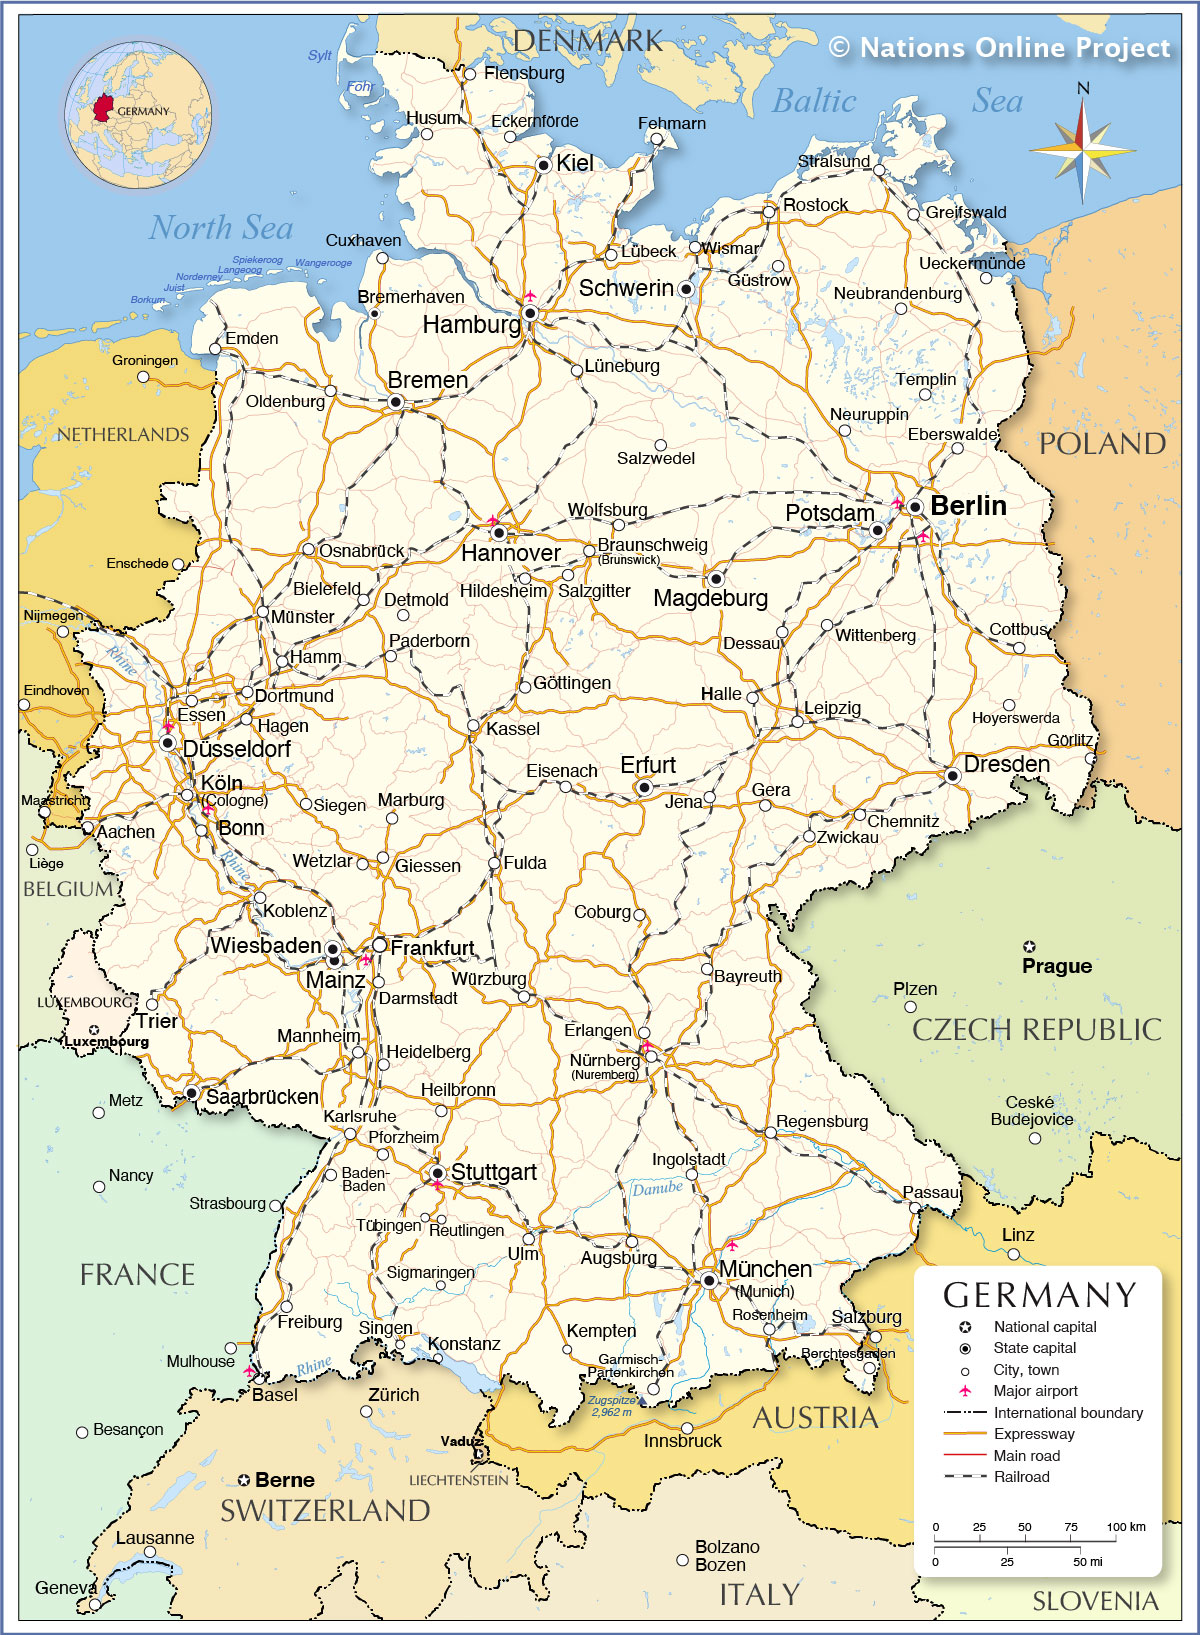 Maps Of Germany And Switzerland : germany, switzerland, Political, Germany, Nations, Online, Project